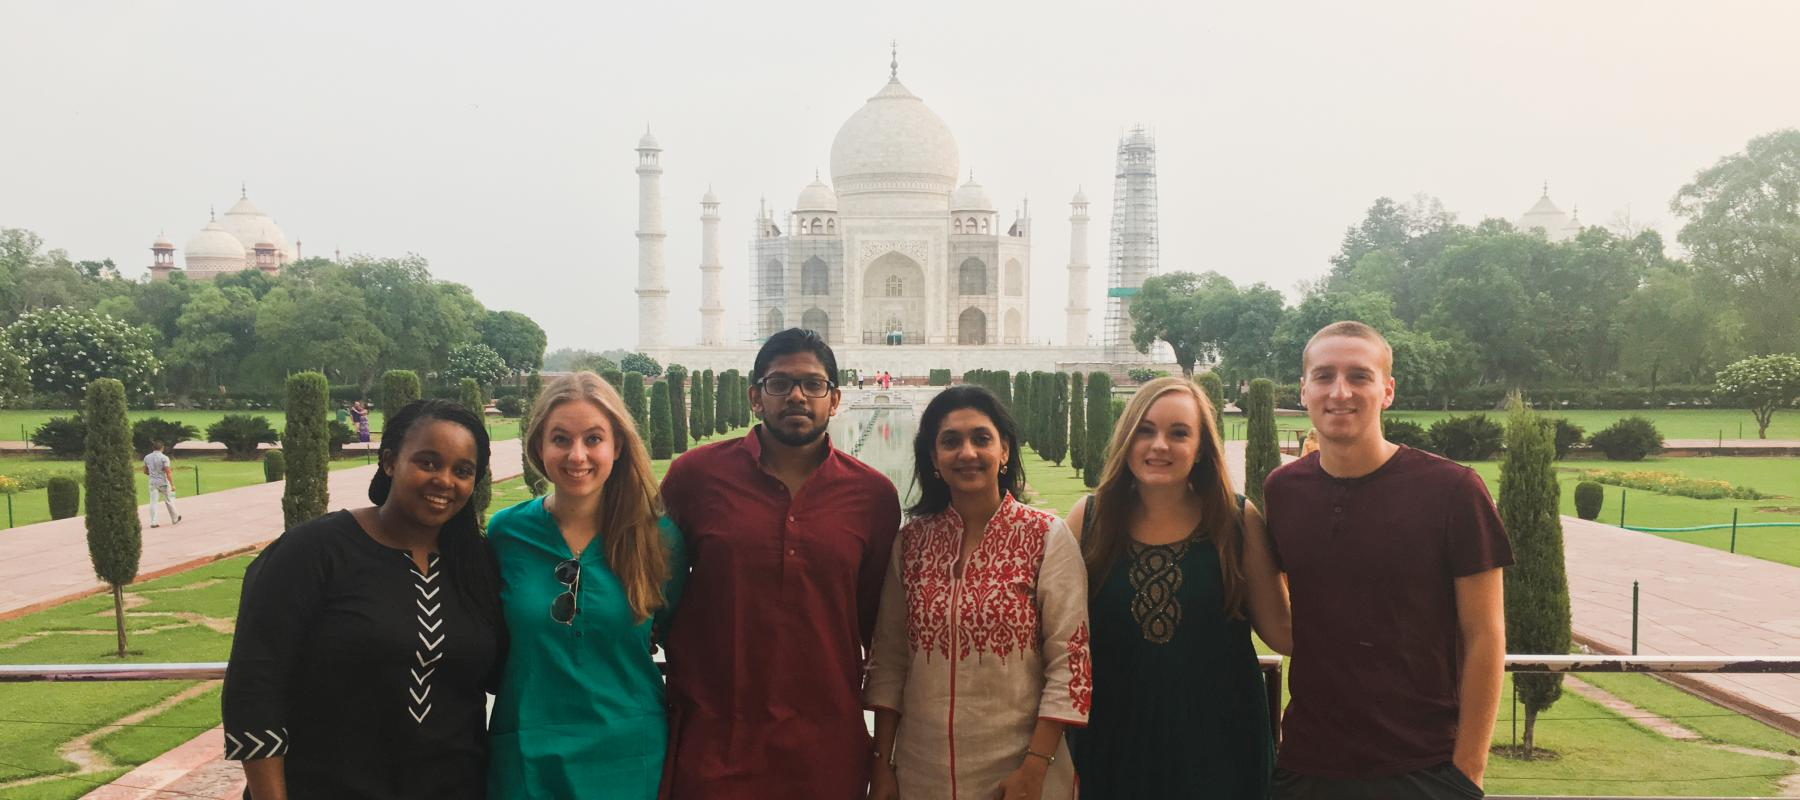 Iacocca International Internship students in India visited the Taj Mahal